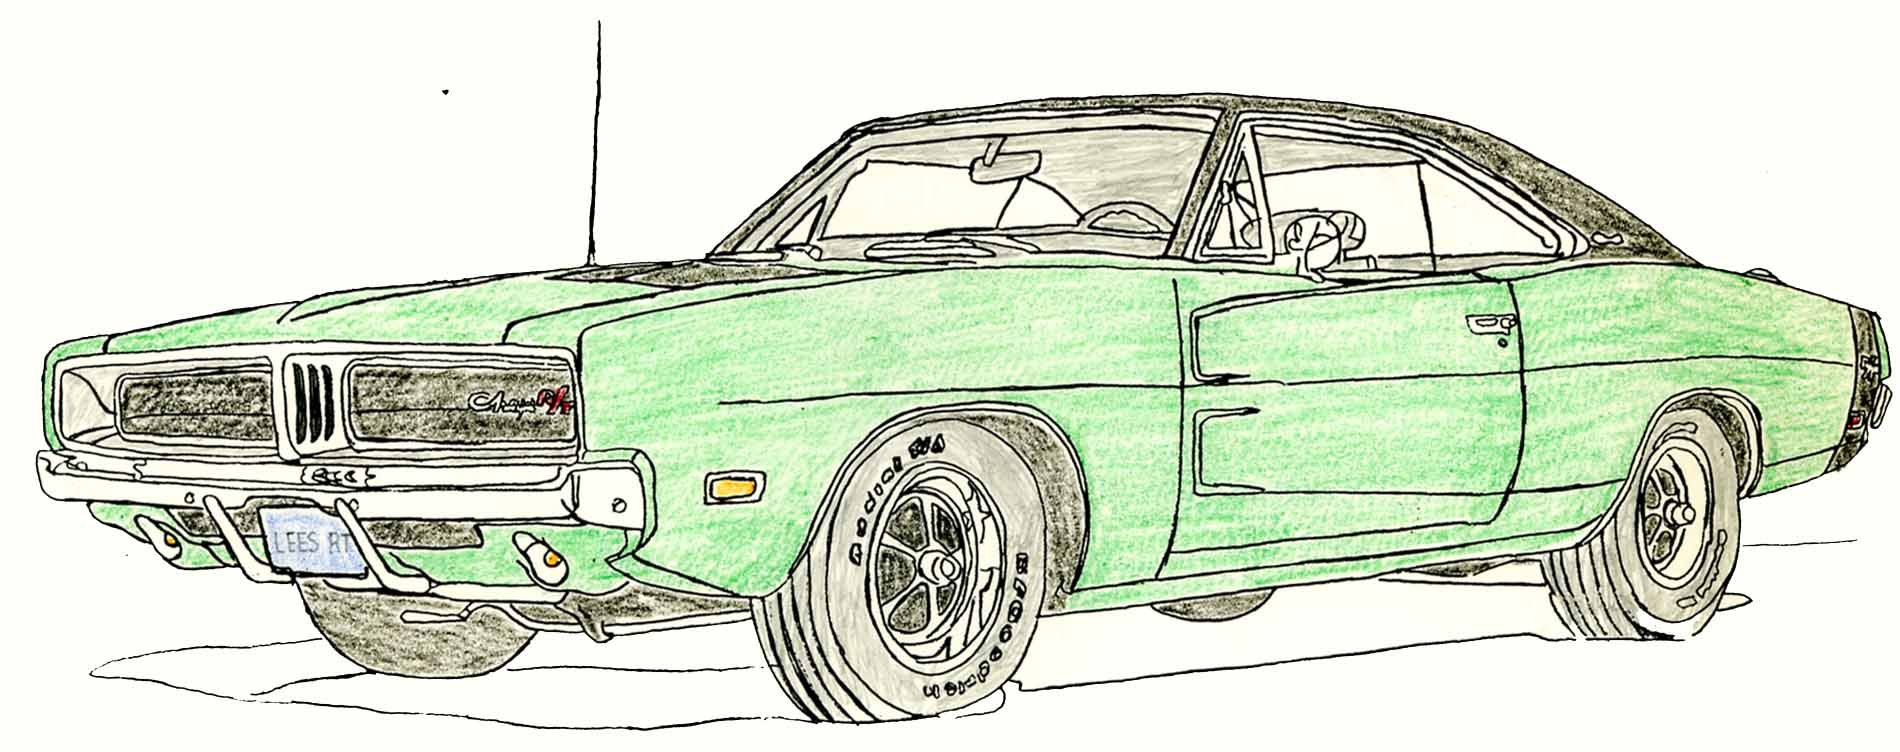 Printable coloring pages dodge charger - 69 Charger F6 Colored Sketch